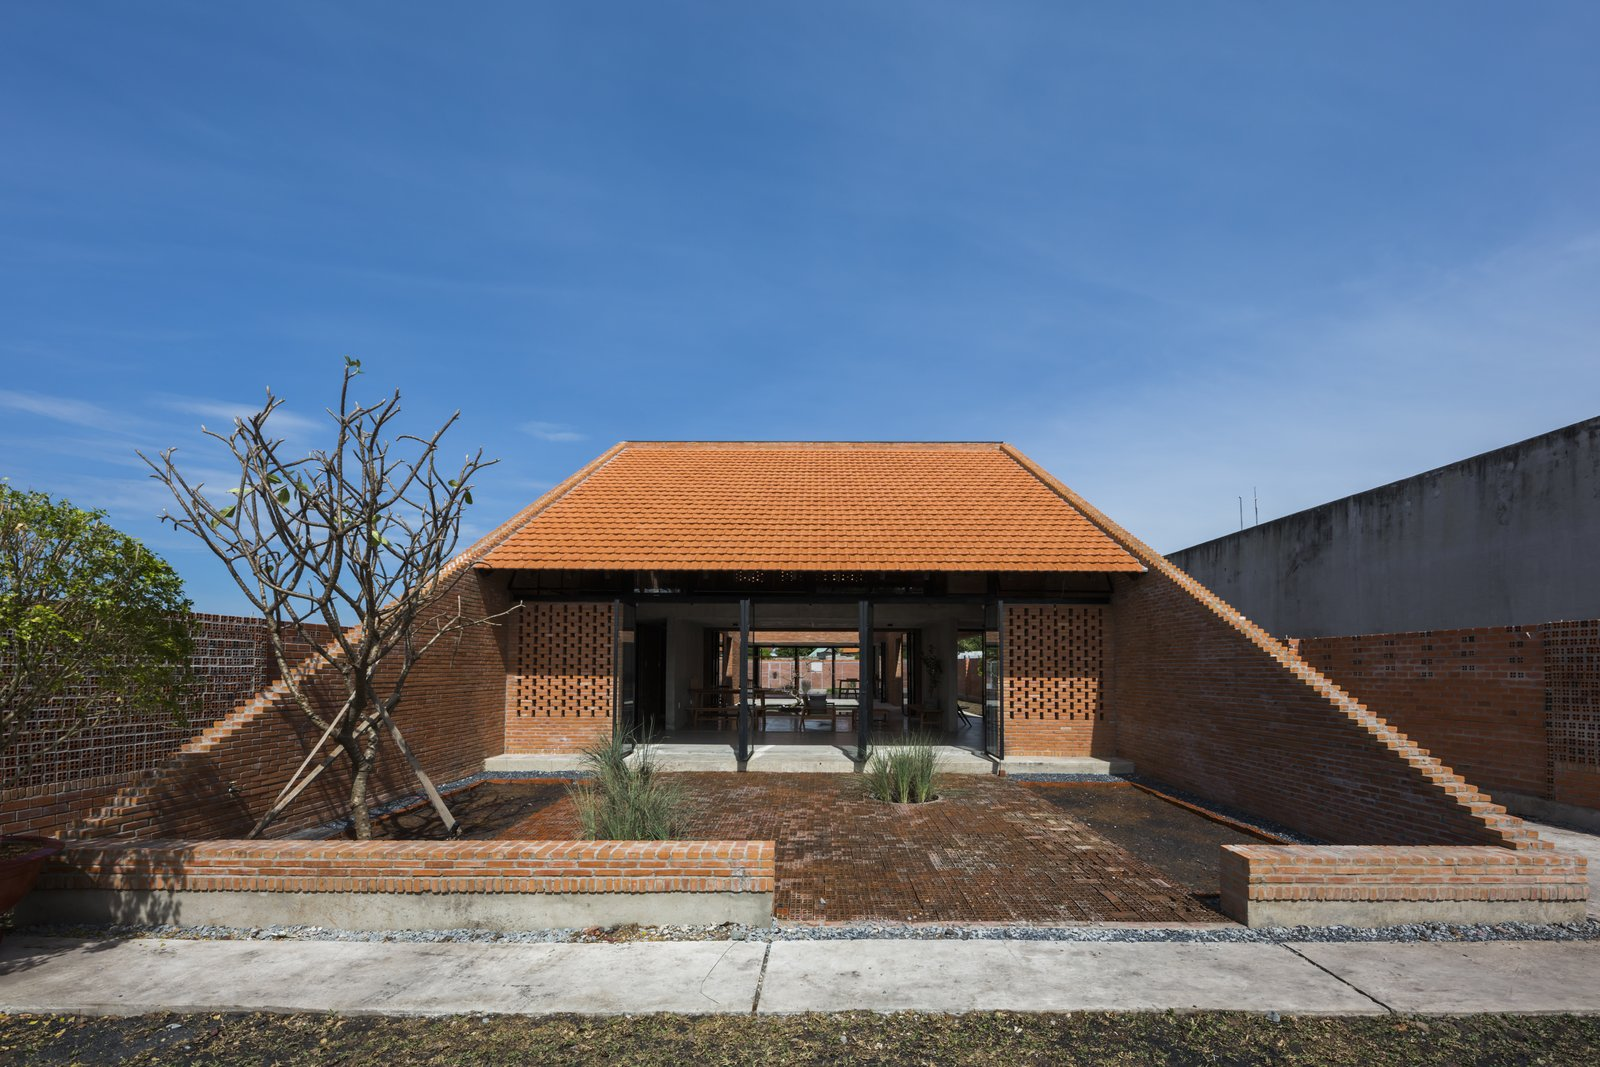 Clay brick flooring in the front yard helps drain rainwater and reduce heat.